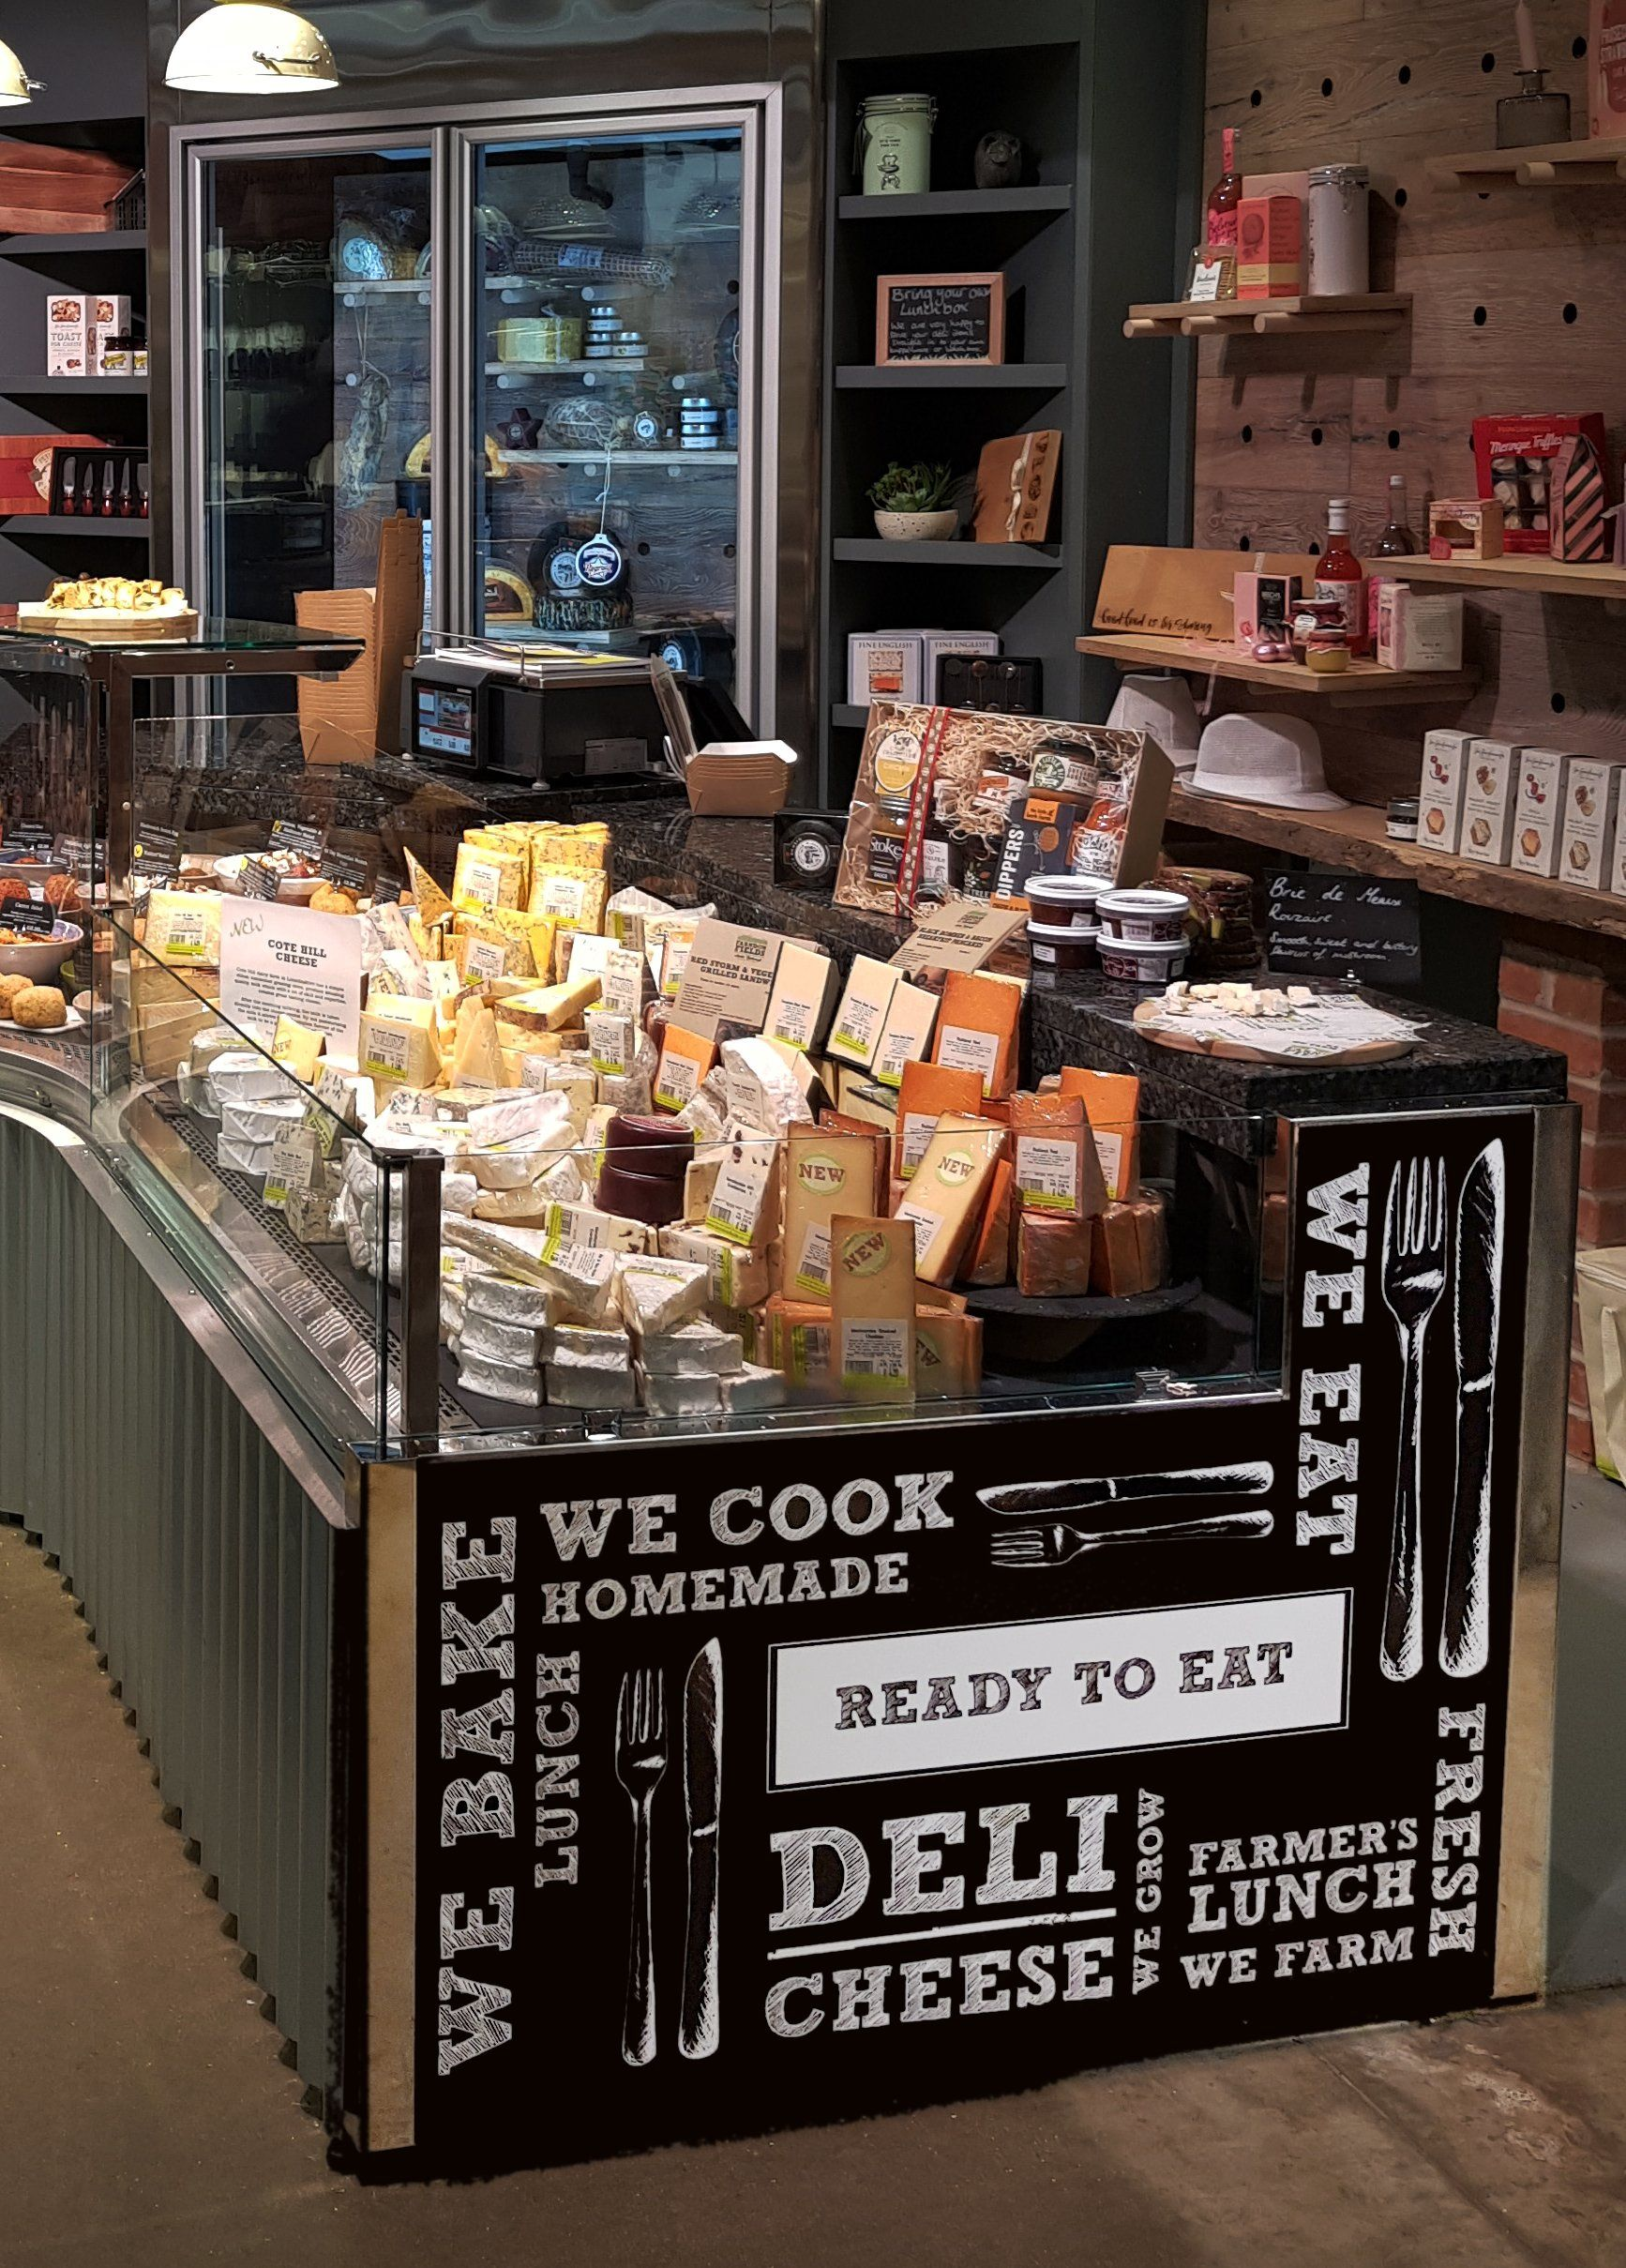 Farndon Fields Deli counter, High quality food, Cooking